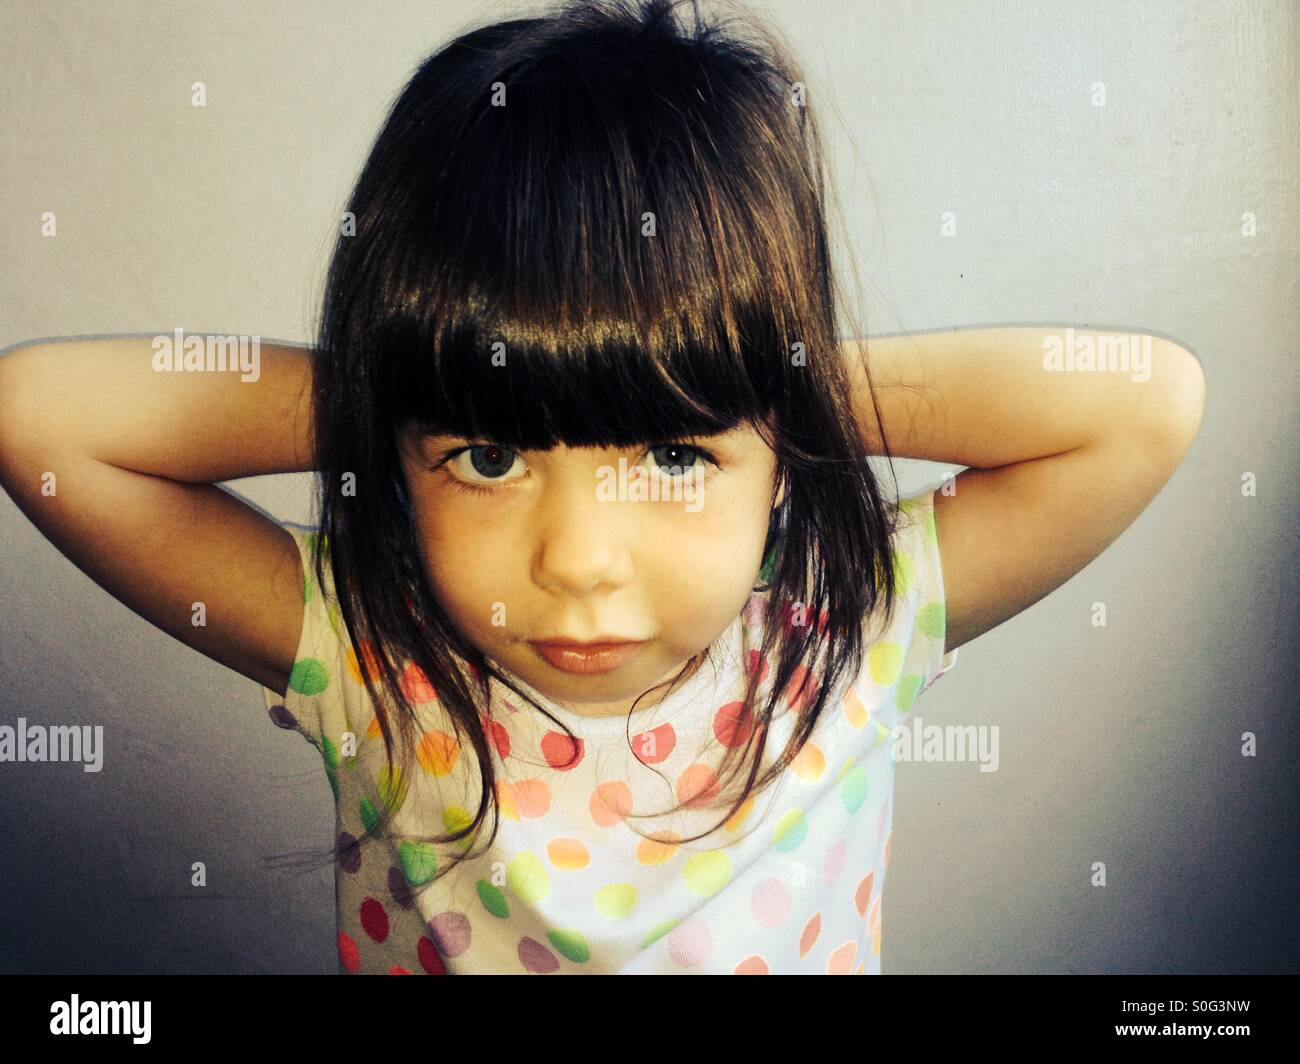 Childrens Portrait Stockfotos & Childrens Portrait Bilder - Alamy